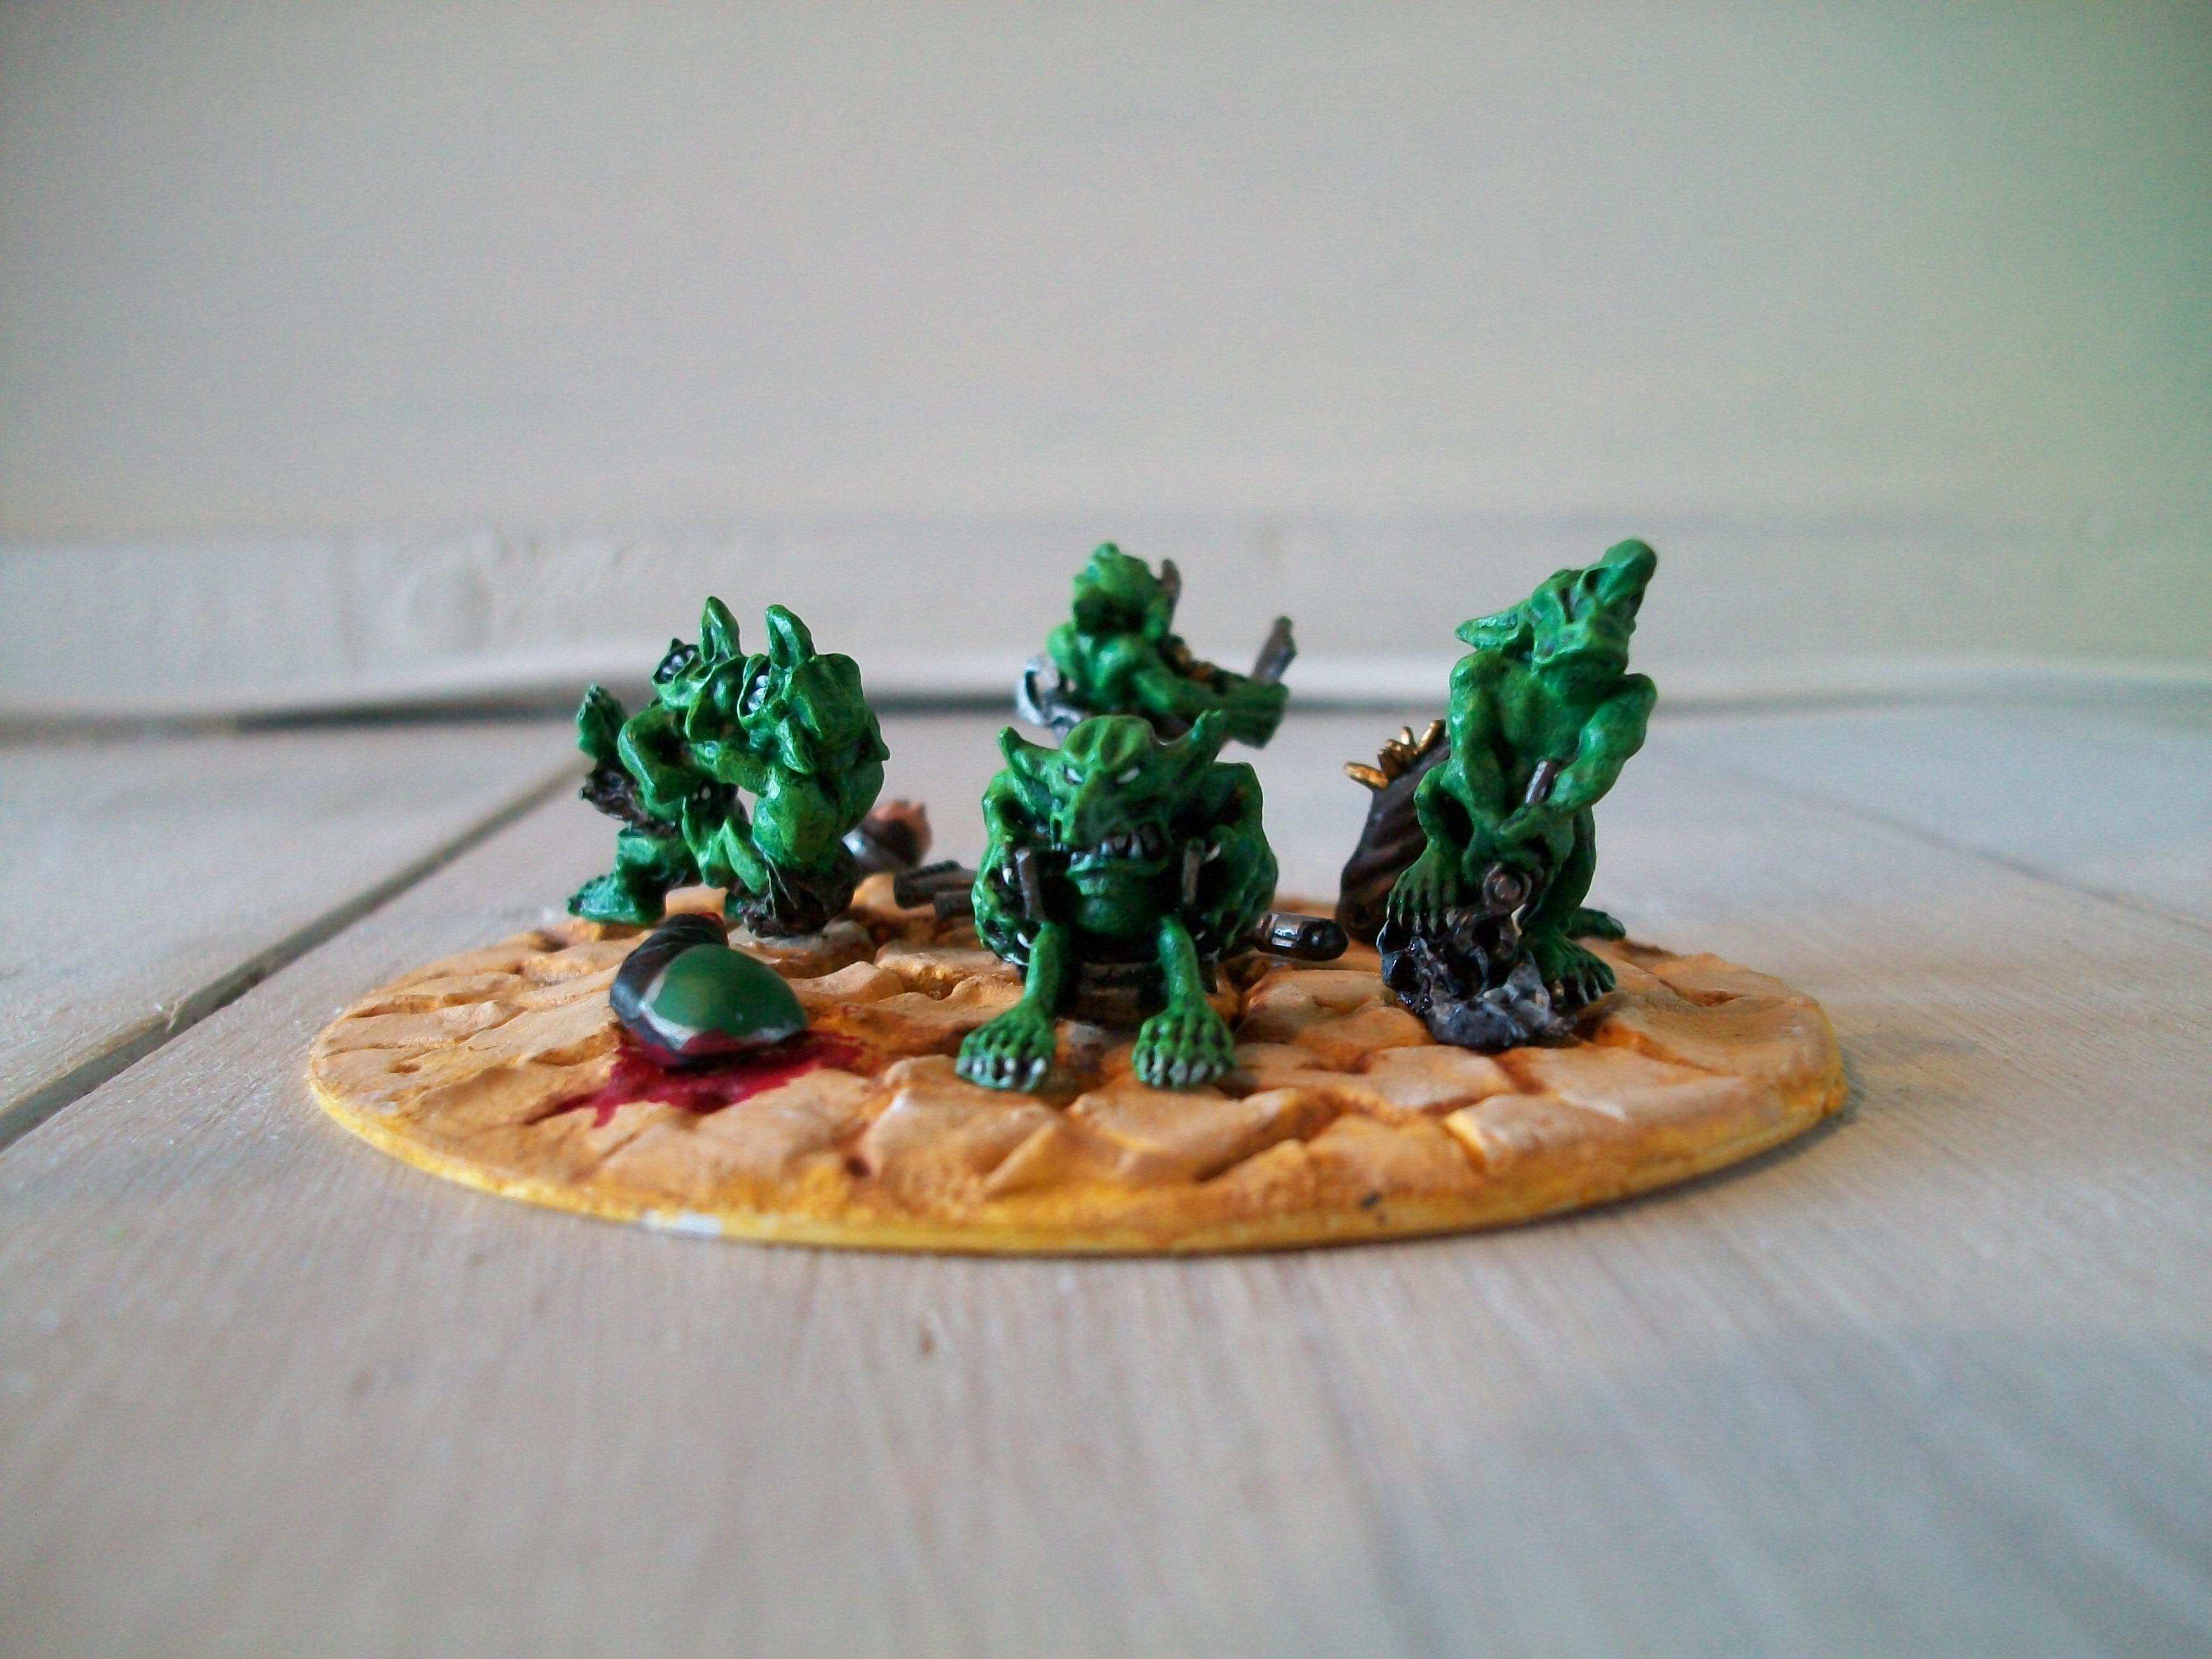 Blood, Dark Angels, Desert, Diorama, Gretchin, Grots, Grotz, Lootin', Looting, Orks, Scavenge, The